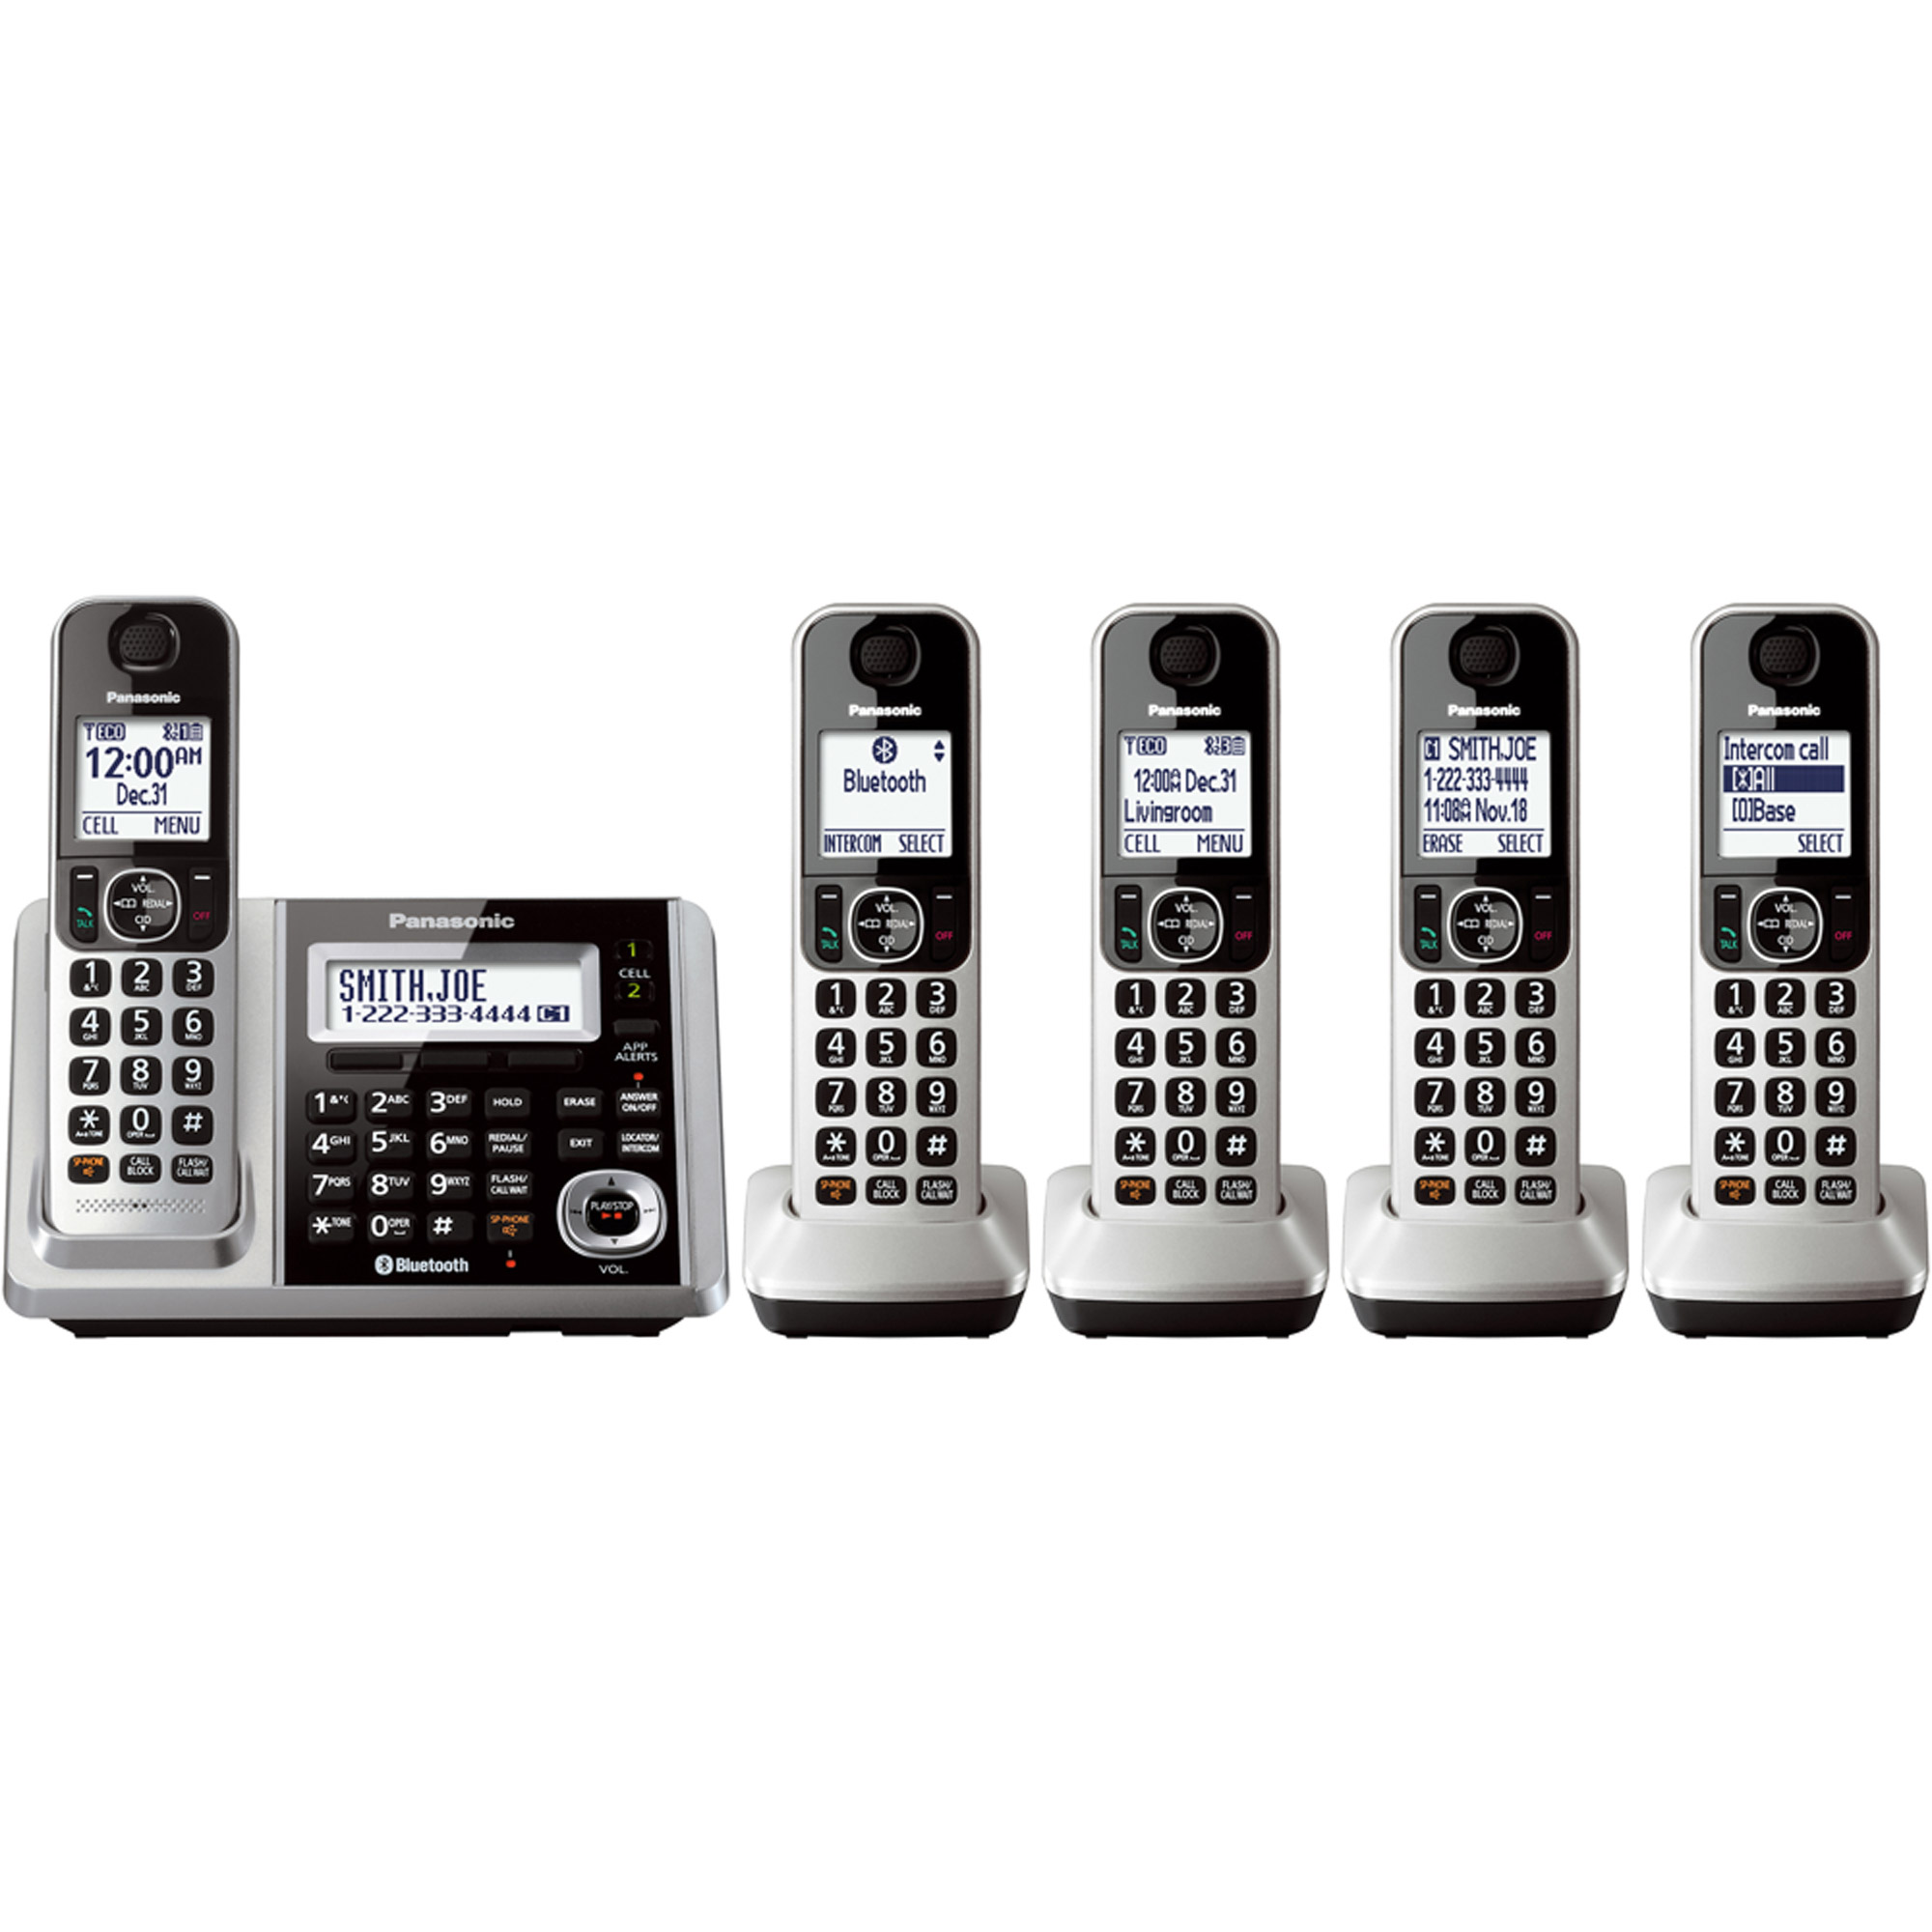 Panasonic Link2Cell Bluetooth Cordless Phone and Answering Machine with 5 Handsets